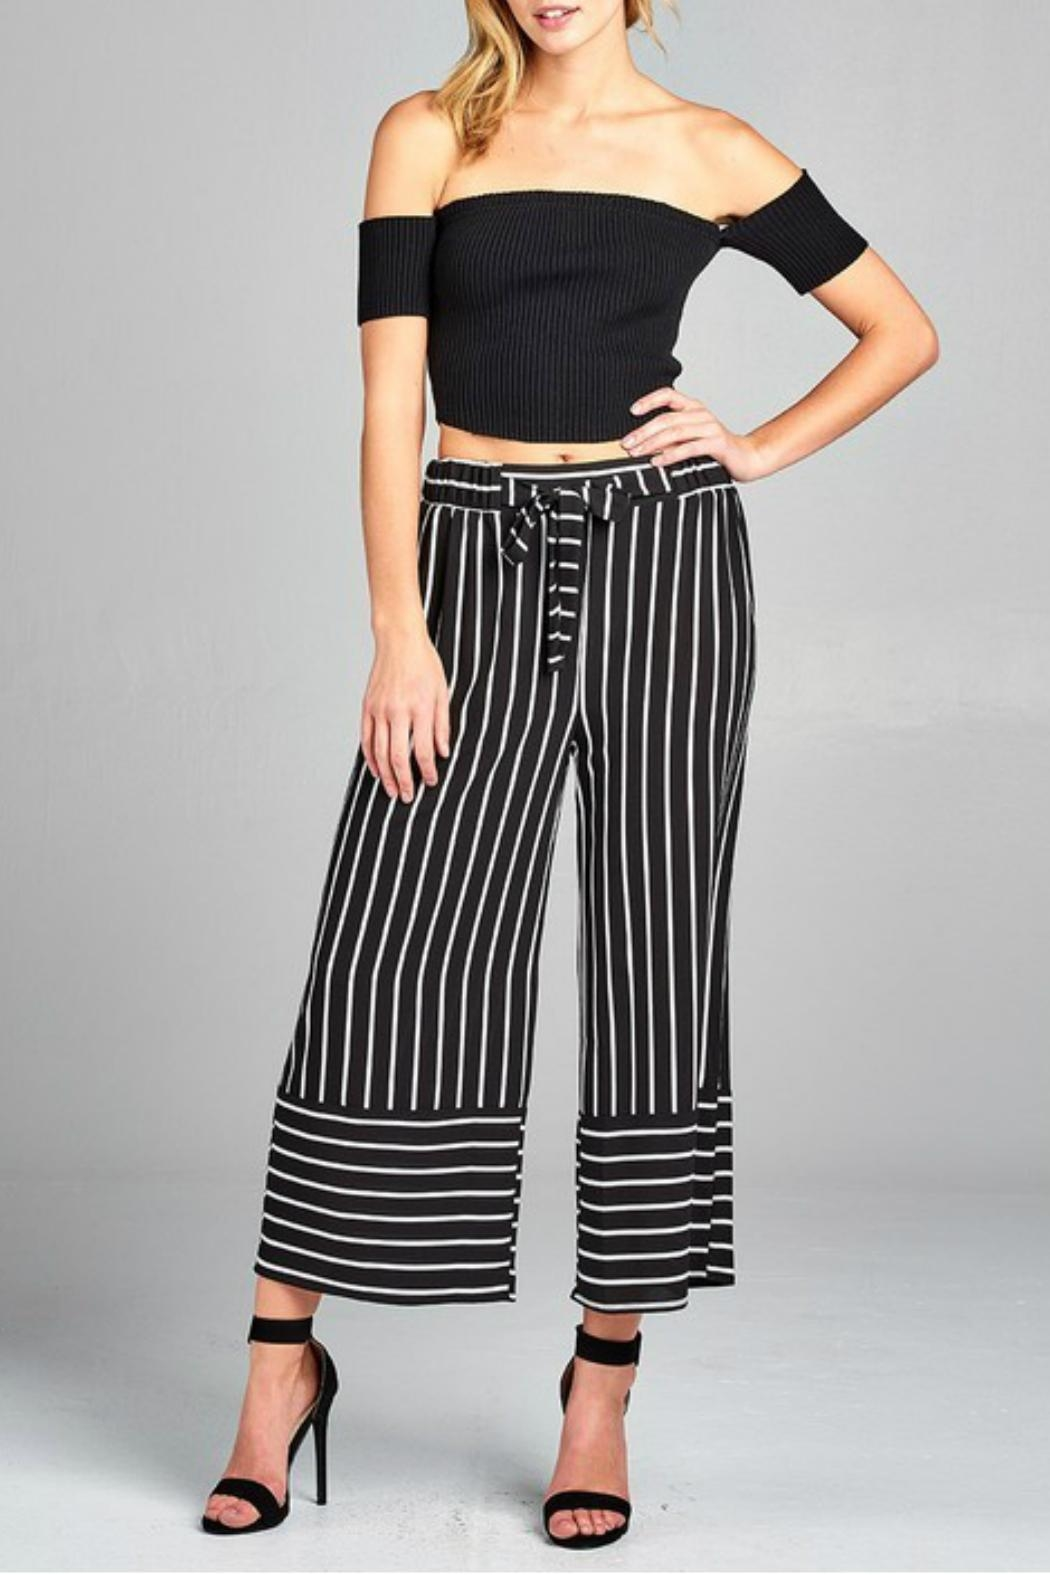 Minx Pinstriped Herring Trousers - Main Image